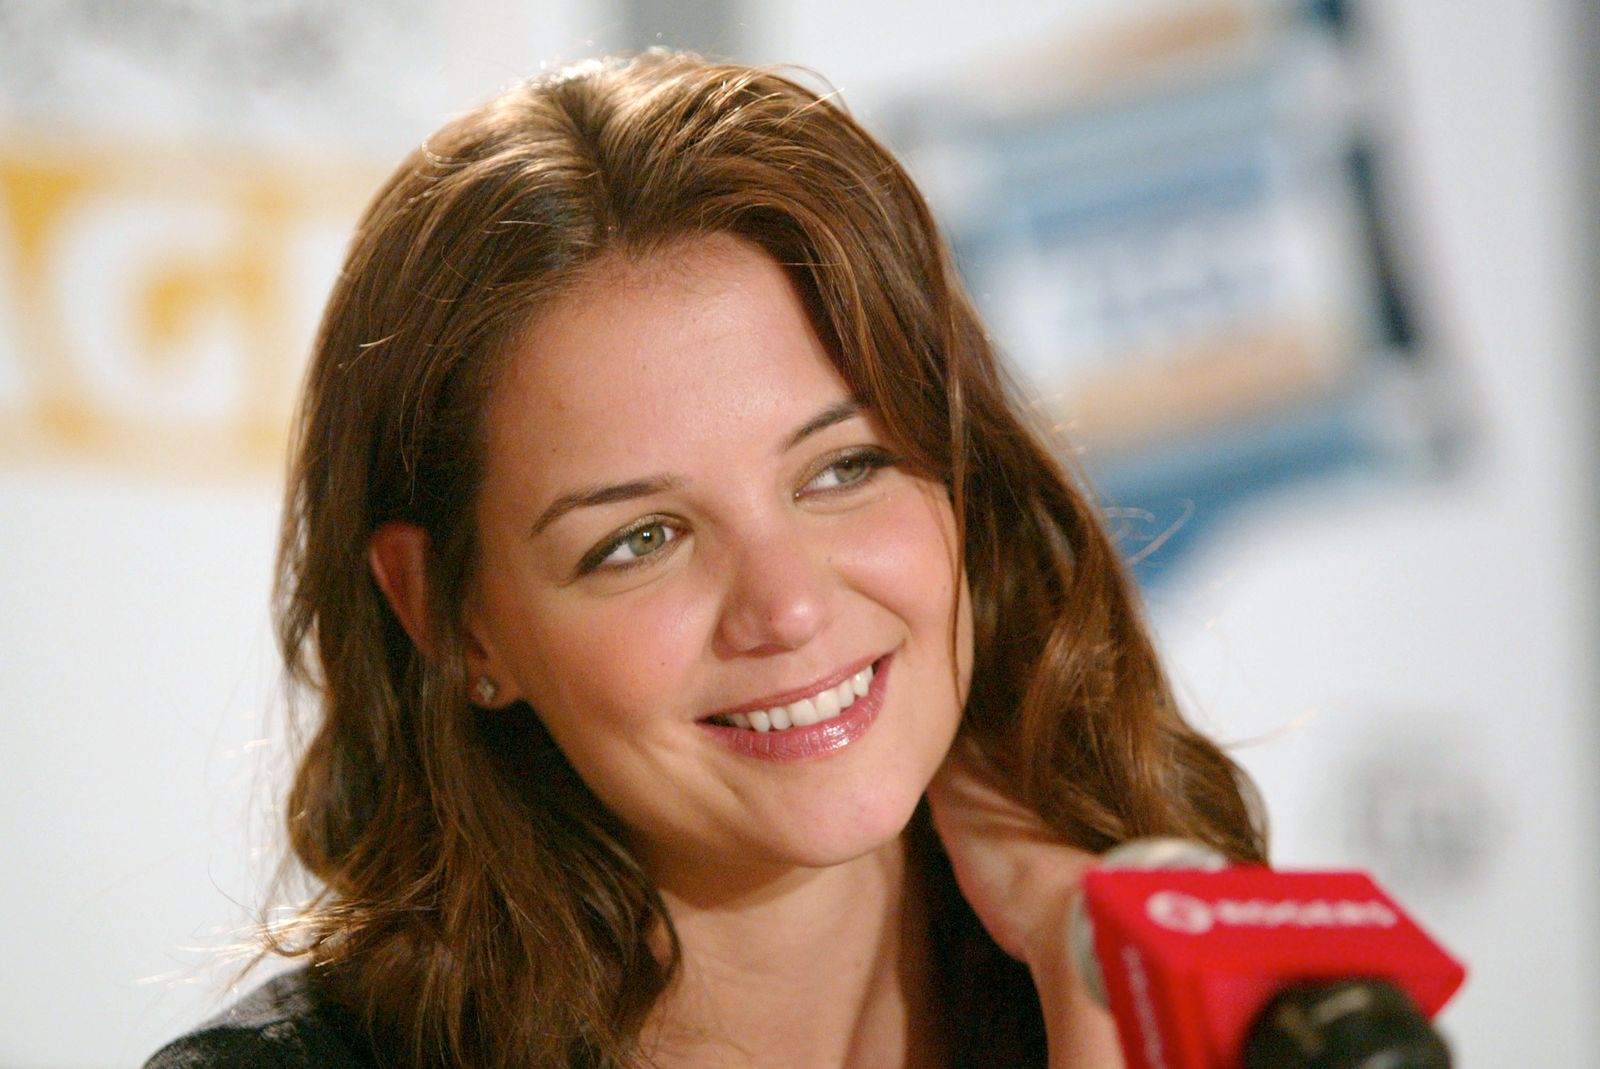 """Actress Katie Holmes participates in """"The Singing Detective"""" press conference during the 2003 Toronto International Film Festival at the Delta Chelsea Hotel September 8, 2003 in Toronto, Canada.  Photo: Getty Images"""